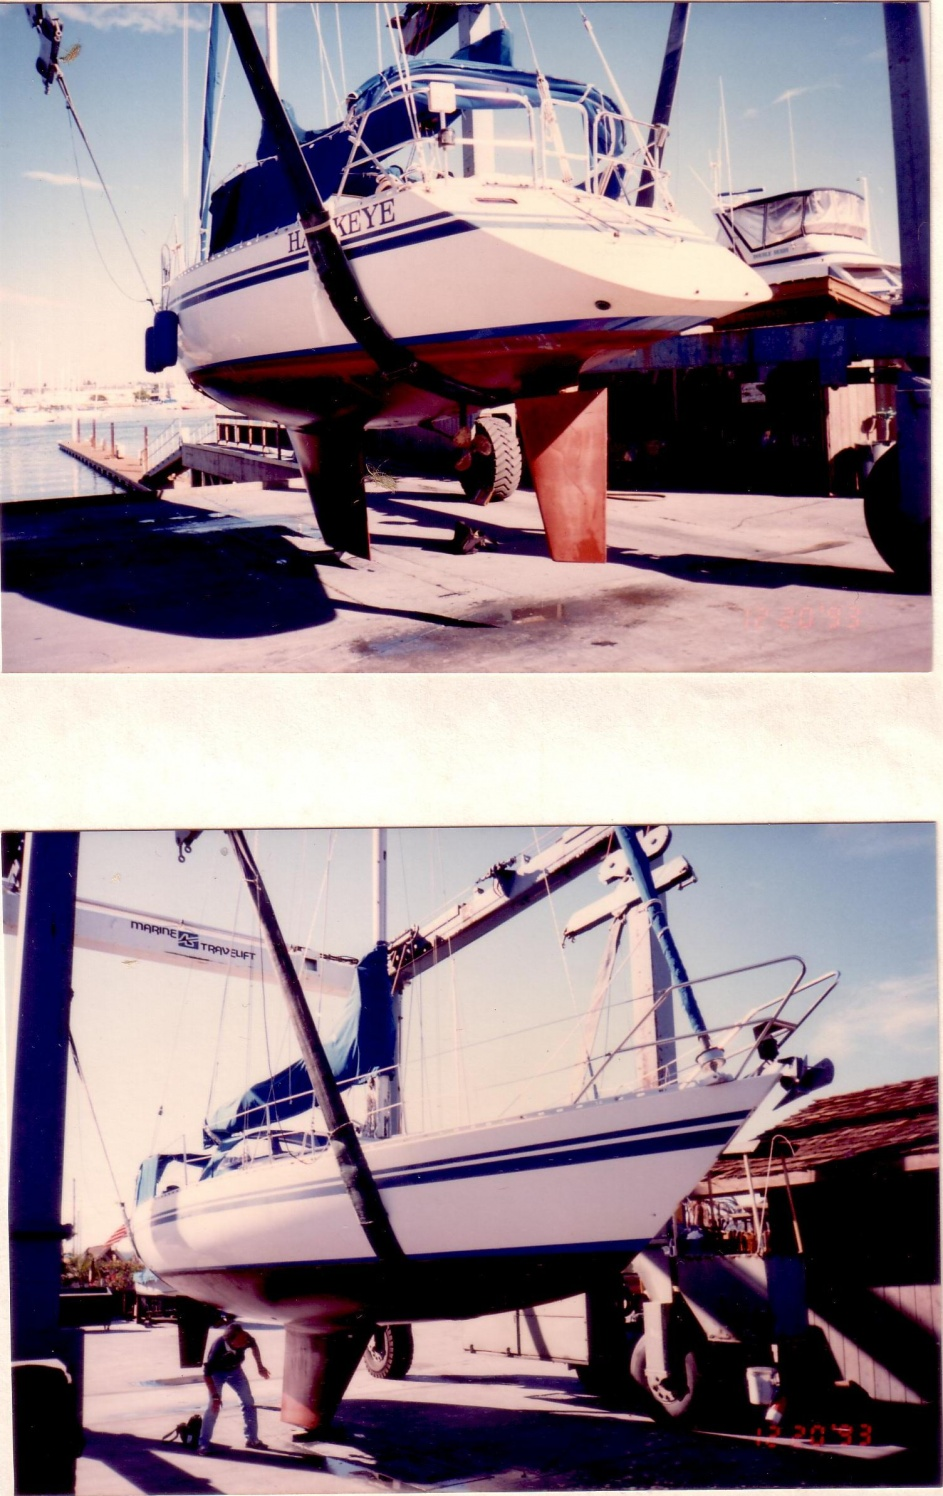 Click image for larger version  Name:Hawkeye - out of water photos 1.jpg Views:236 Size:413.3 KB ID:163588